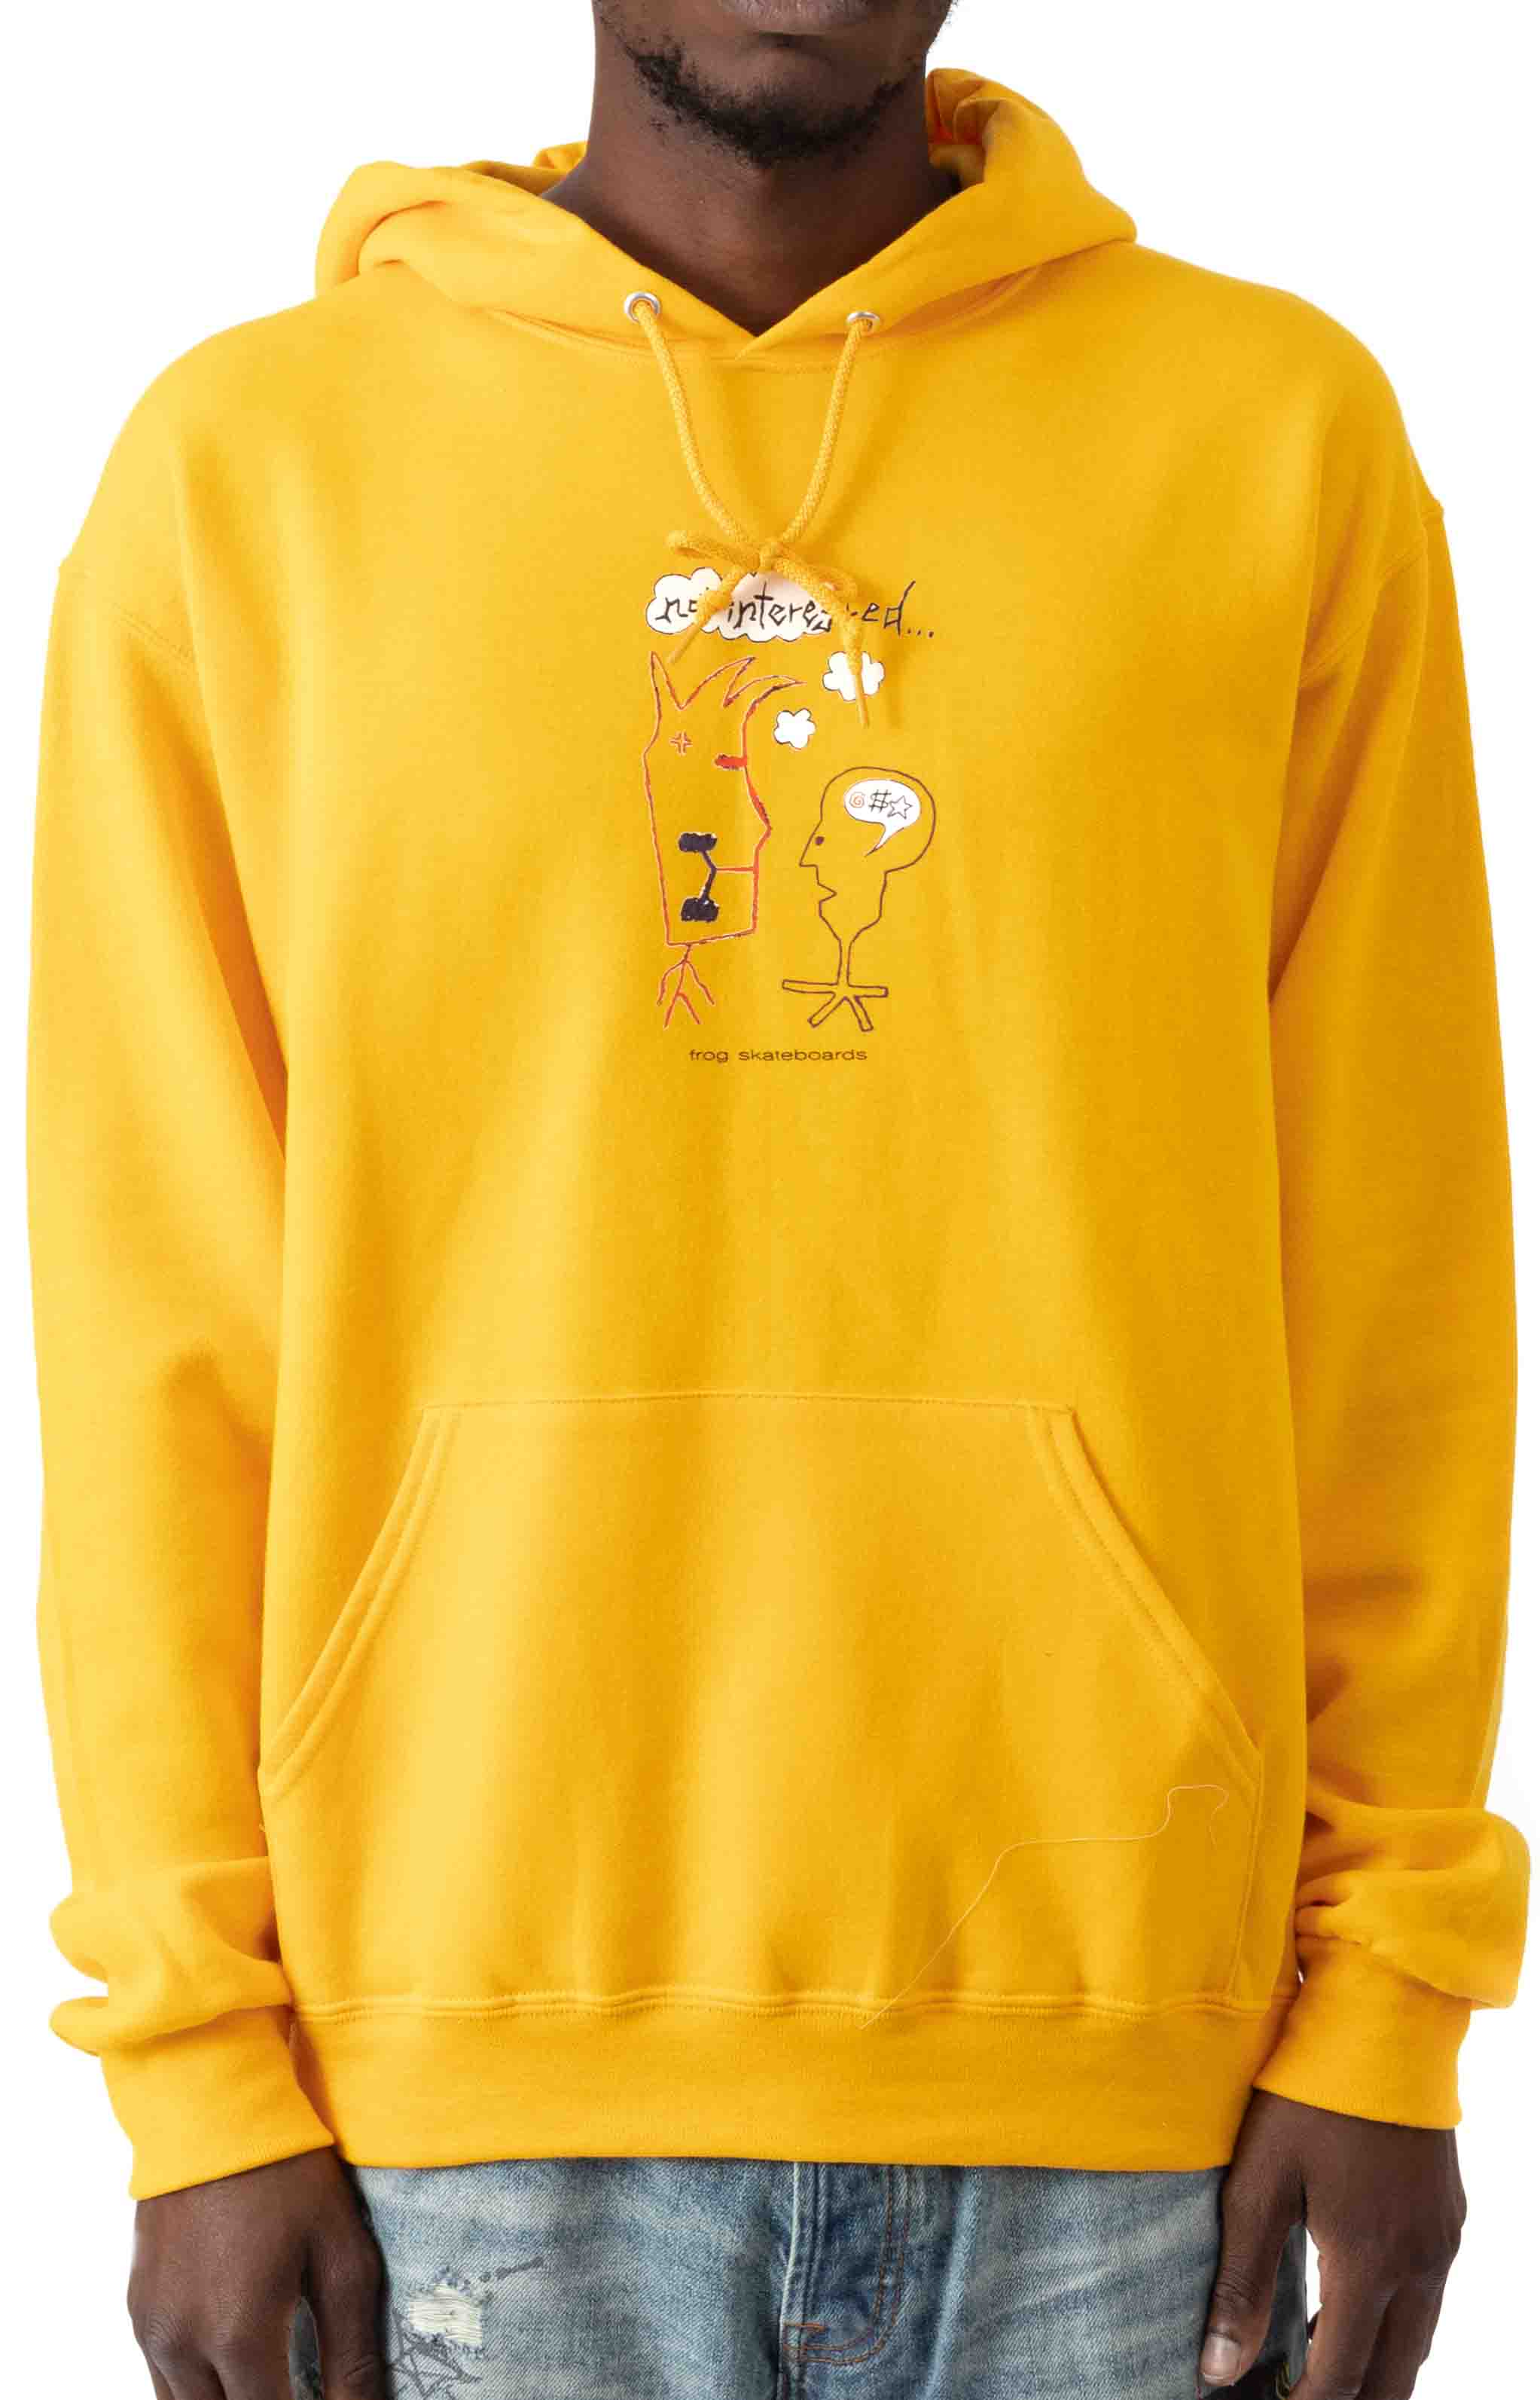 Not Interested Pullover Hoodie - Gold